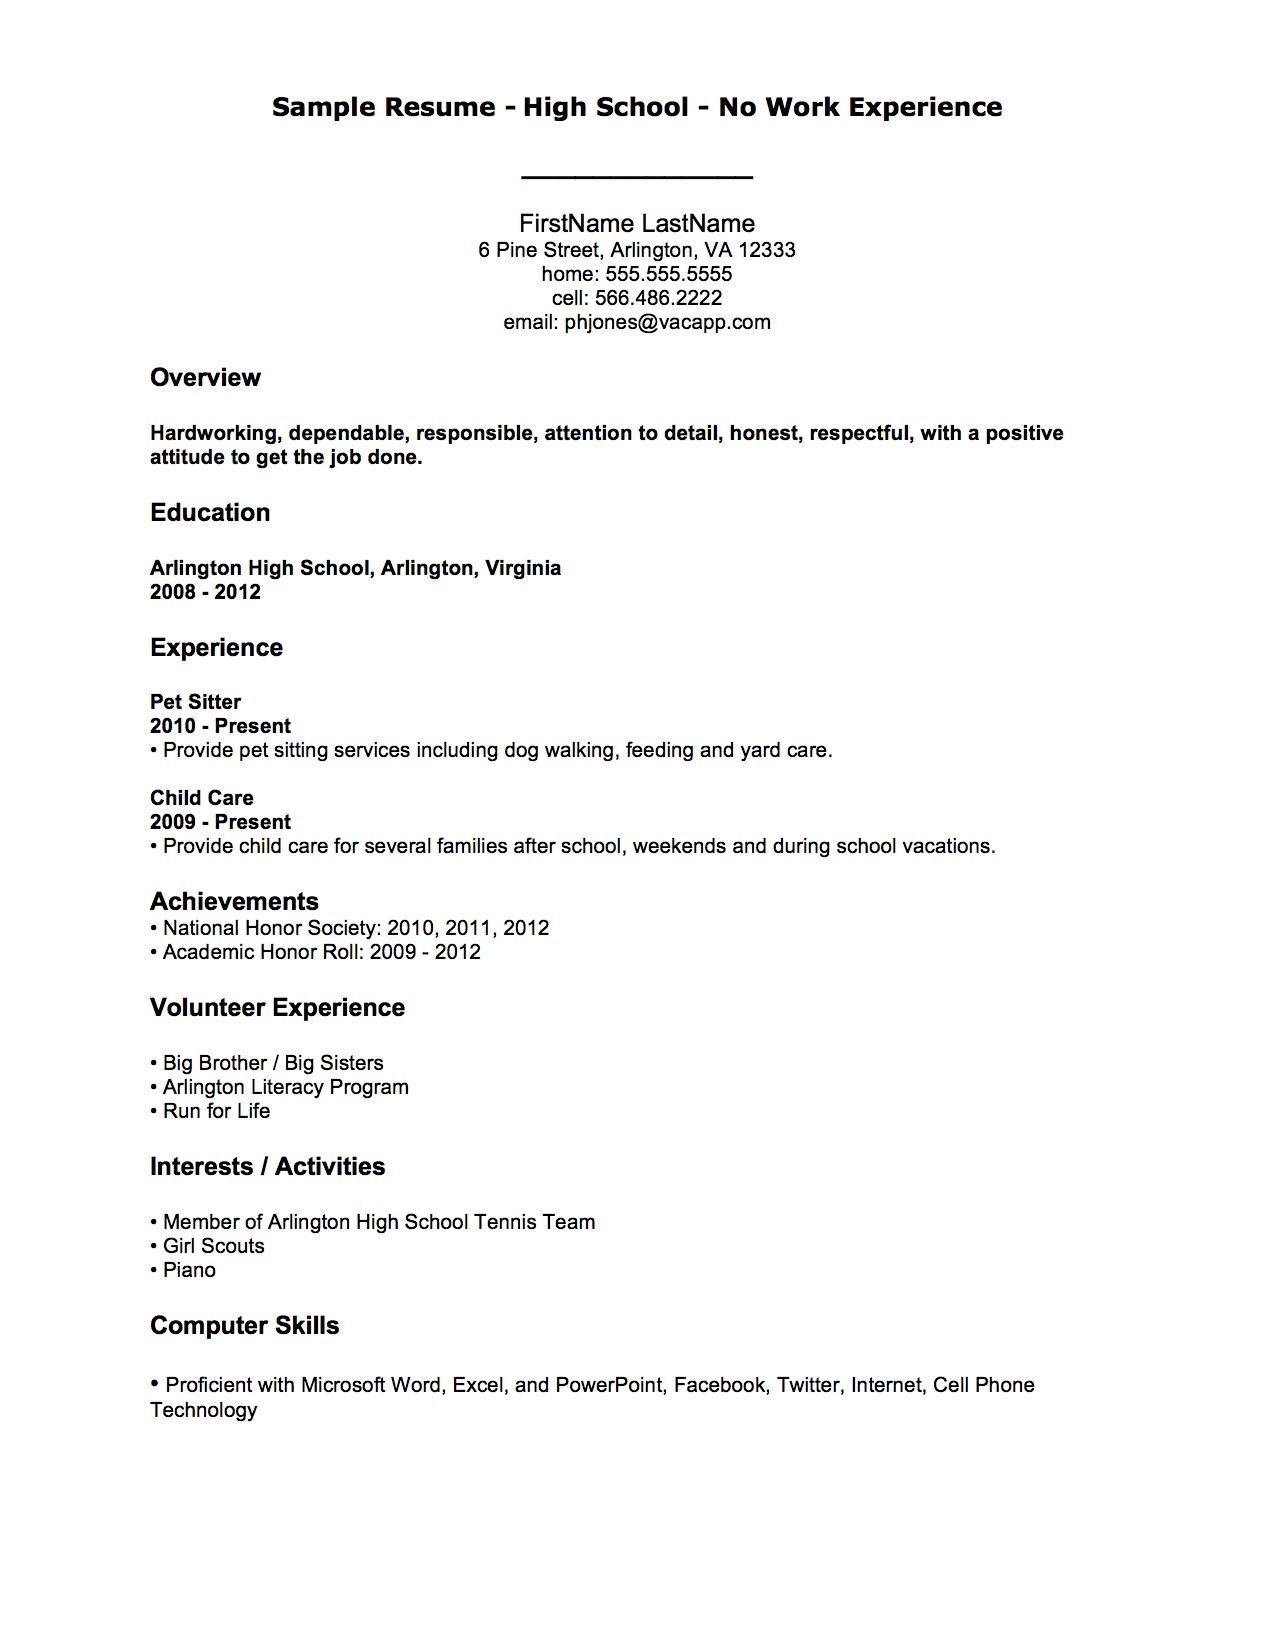 How To Write A Resume With No Work Experience Example Boslu